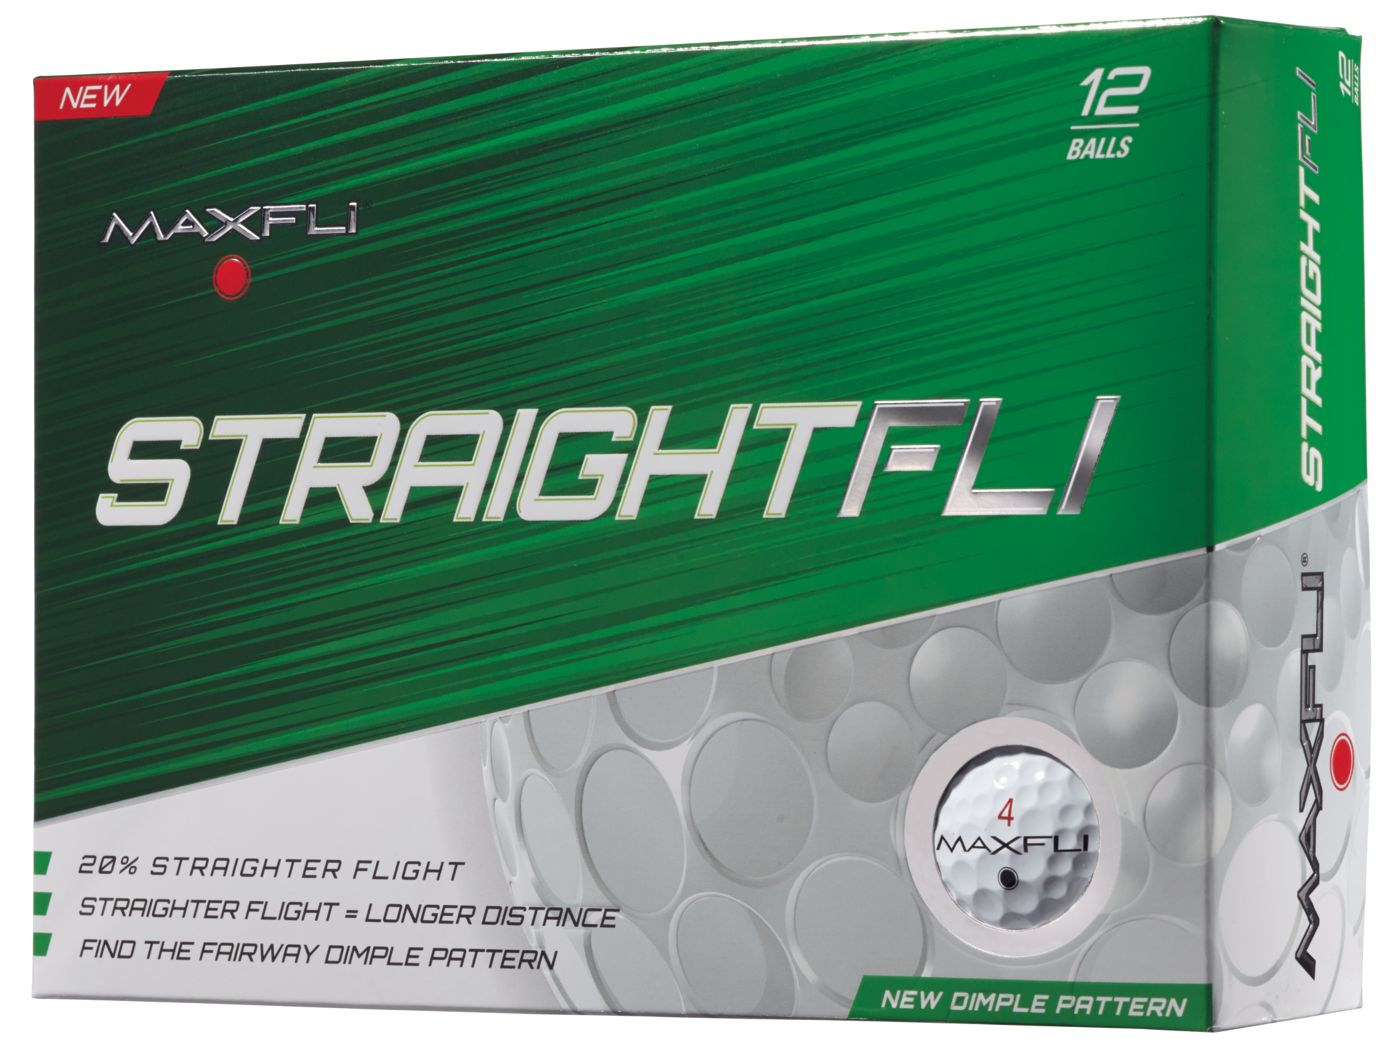 Maxfli StraightFli Personalized Golf Balls